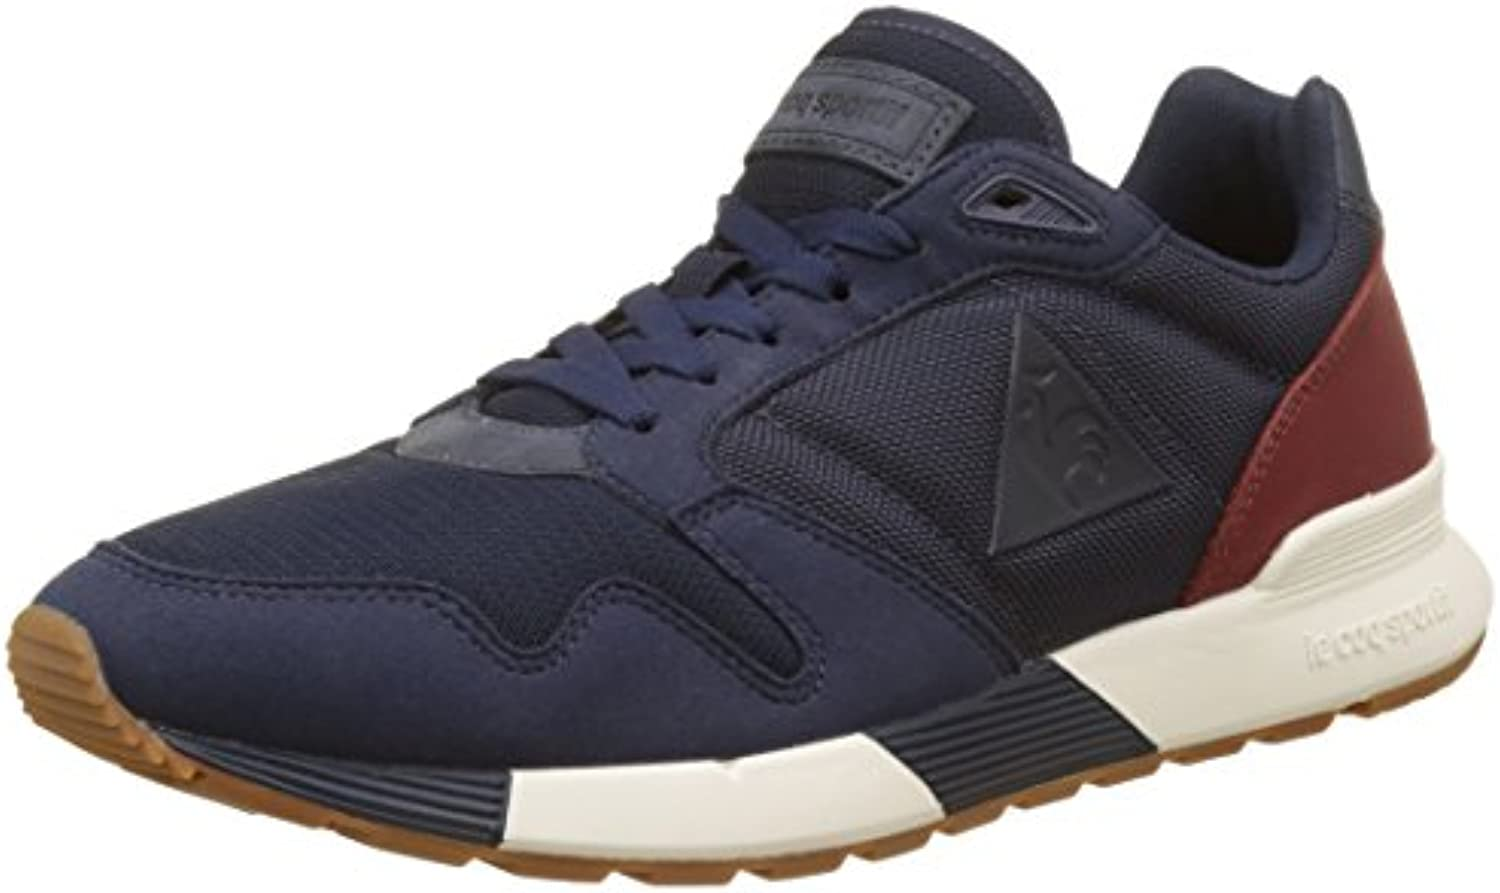 Le Coq Sportif Herren Omega X Craft Trainer Low  Dress Bleu